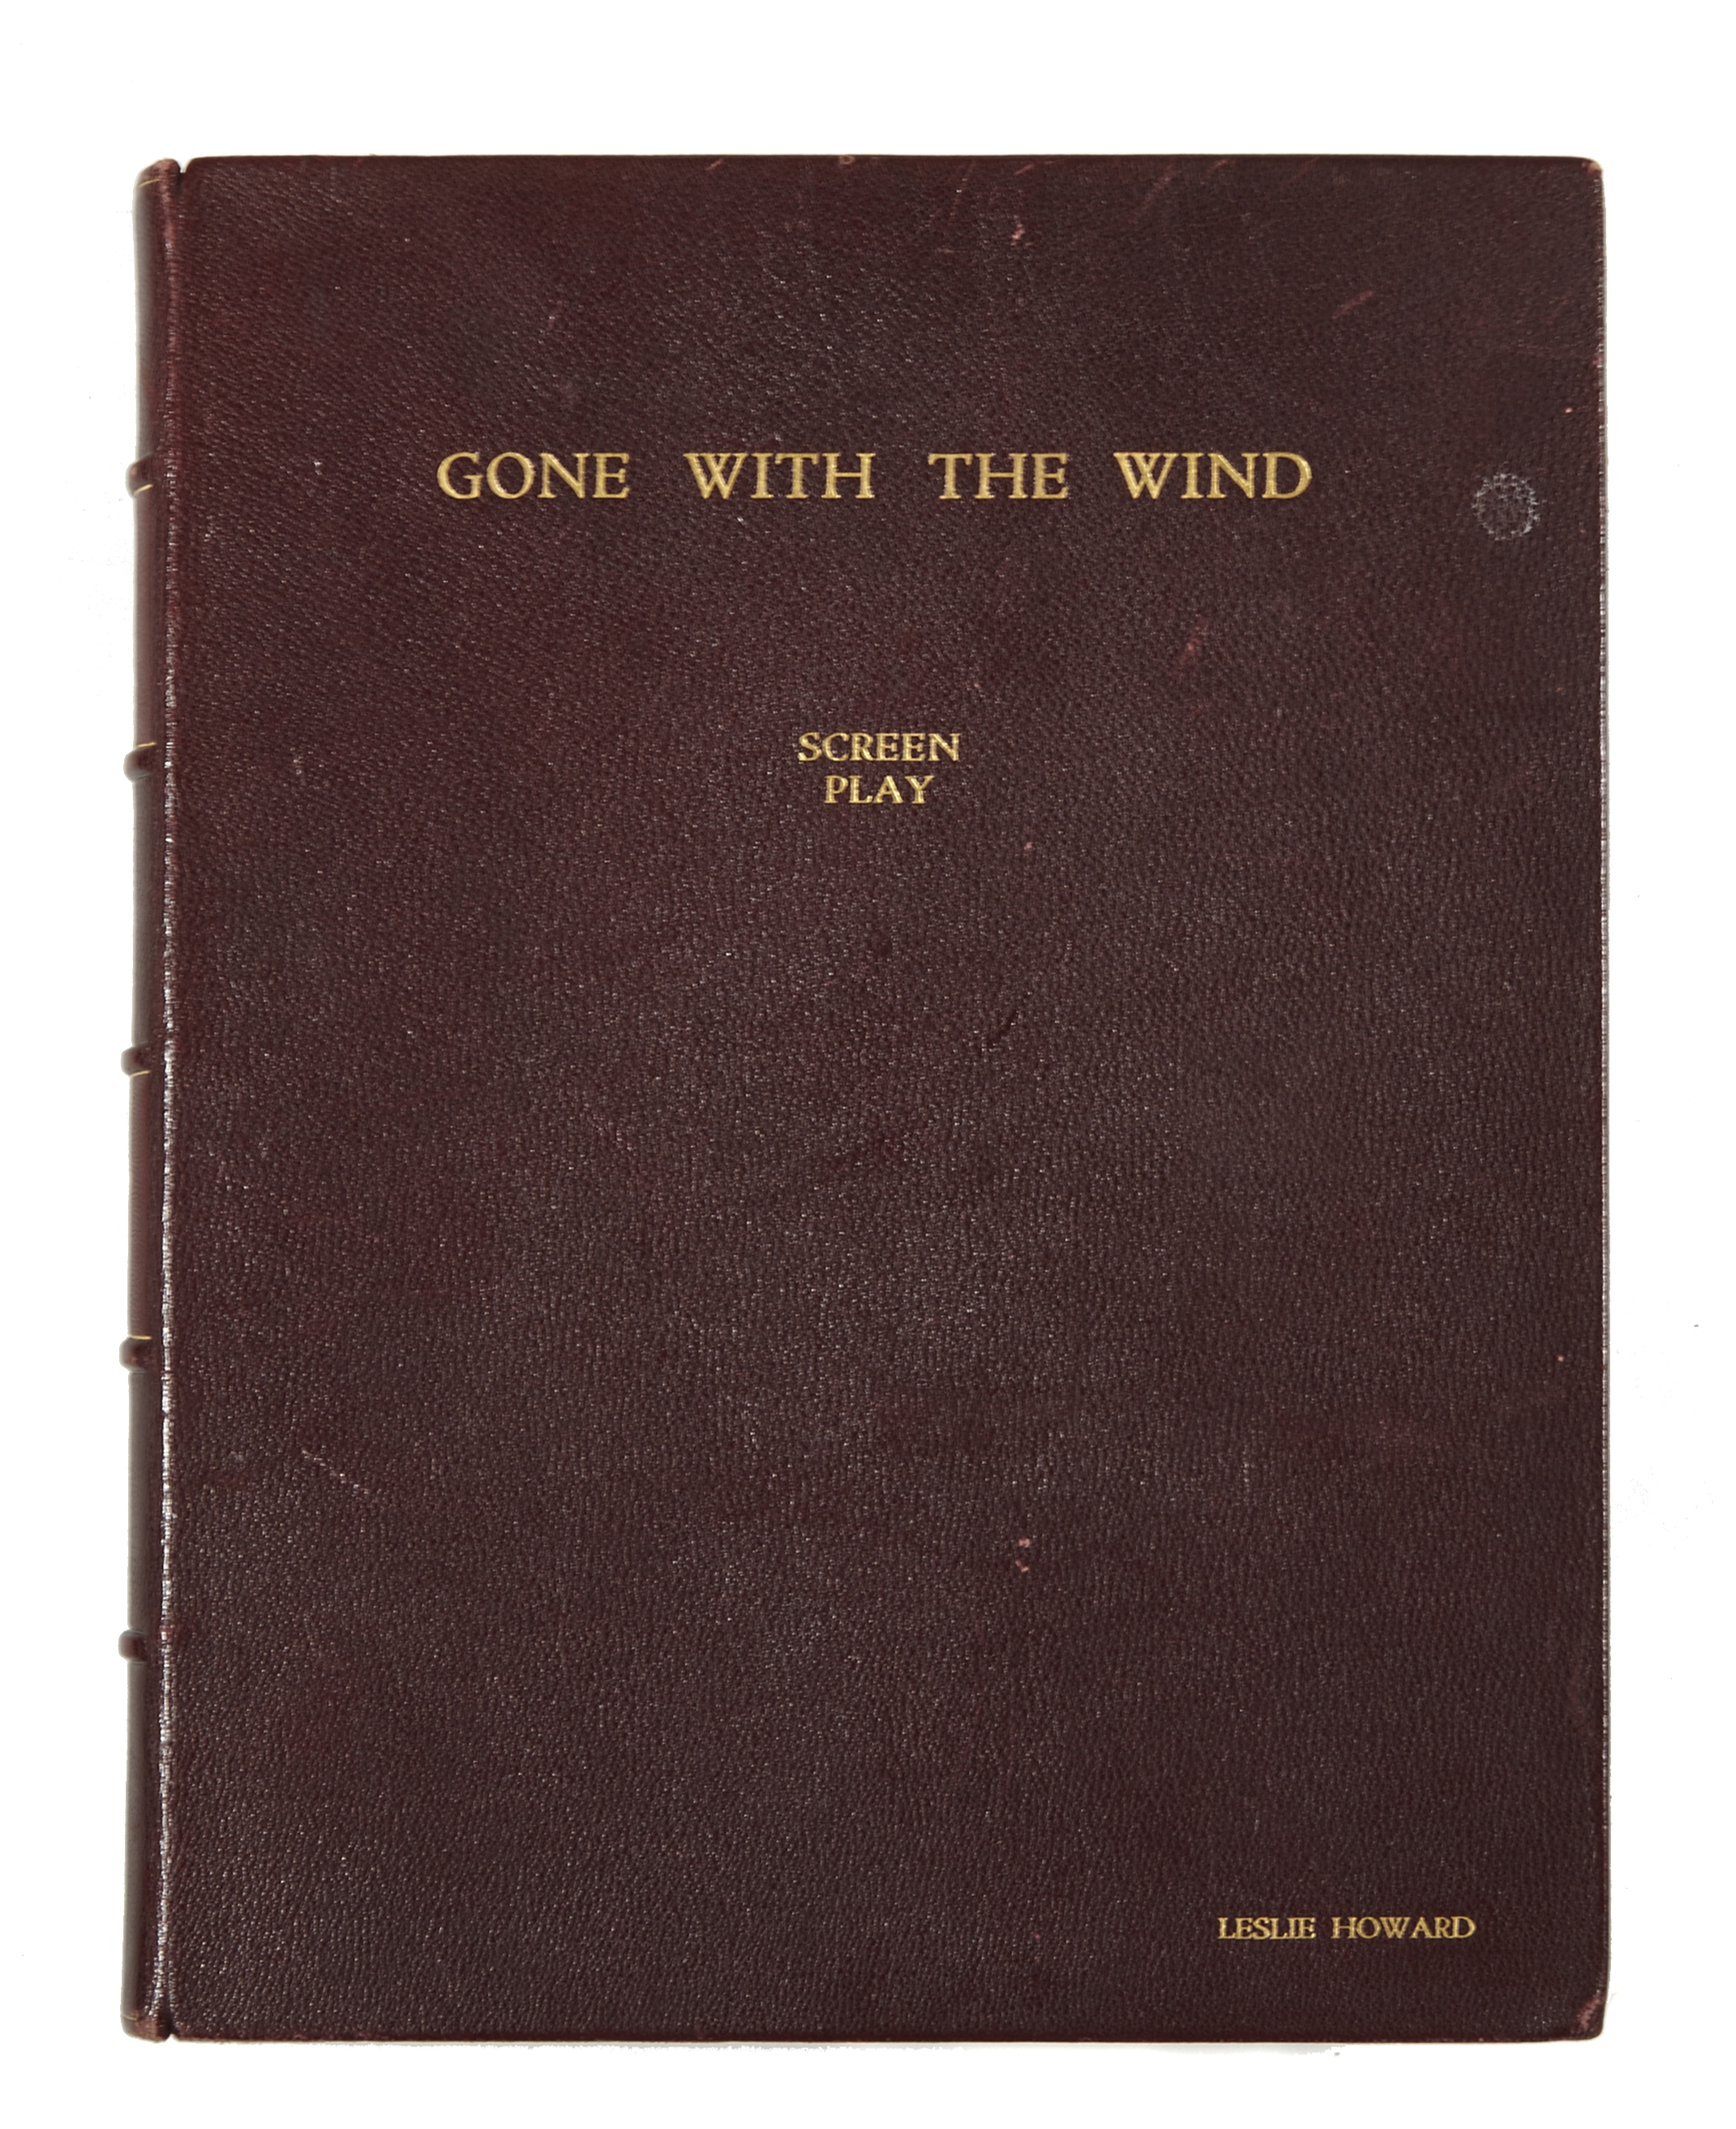 A Leslie Howard custom-bound final shooting script of Gone With the Wind, gifted to him by David ... - Image 2 of 2